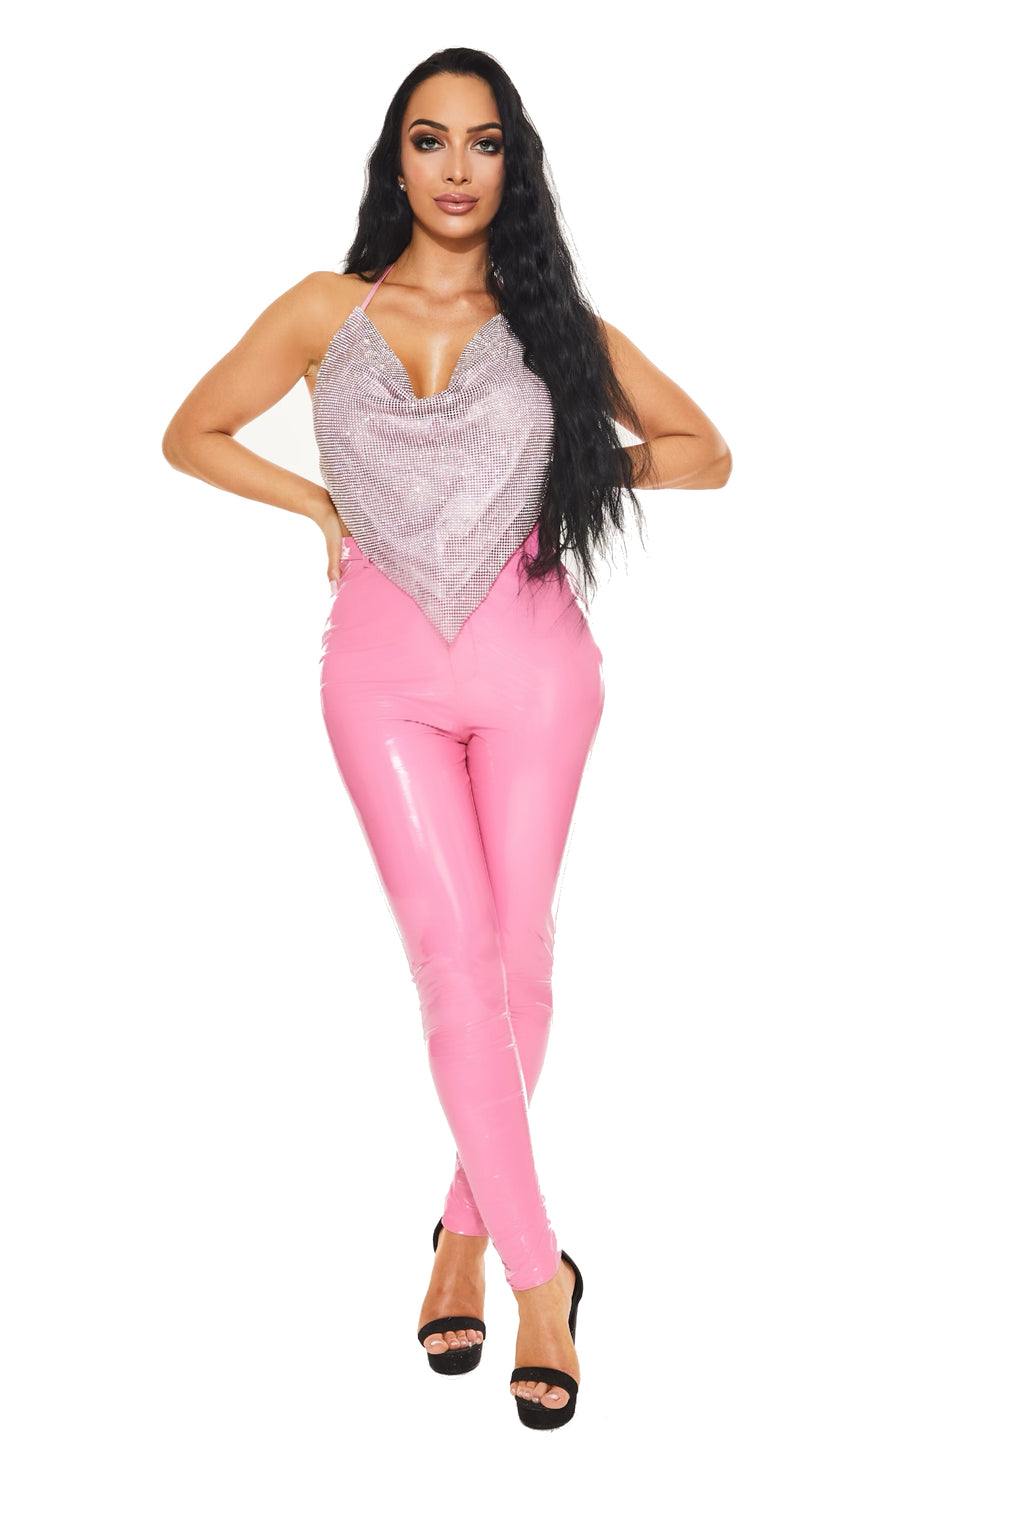 BUBBLE GUM - Latex pants - www.prettyboutique.com